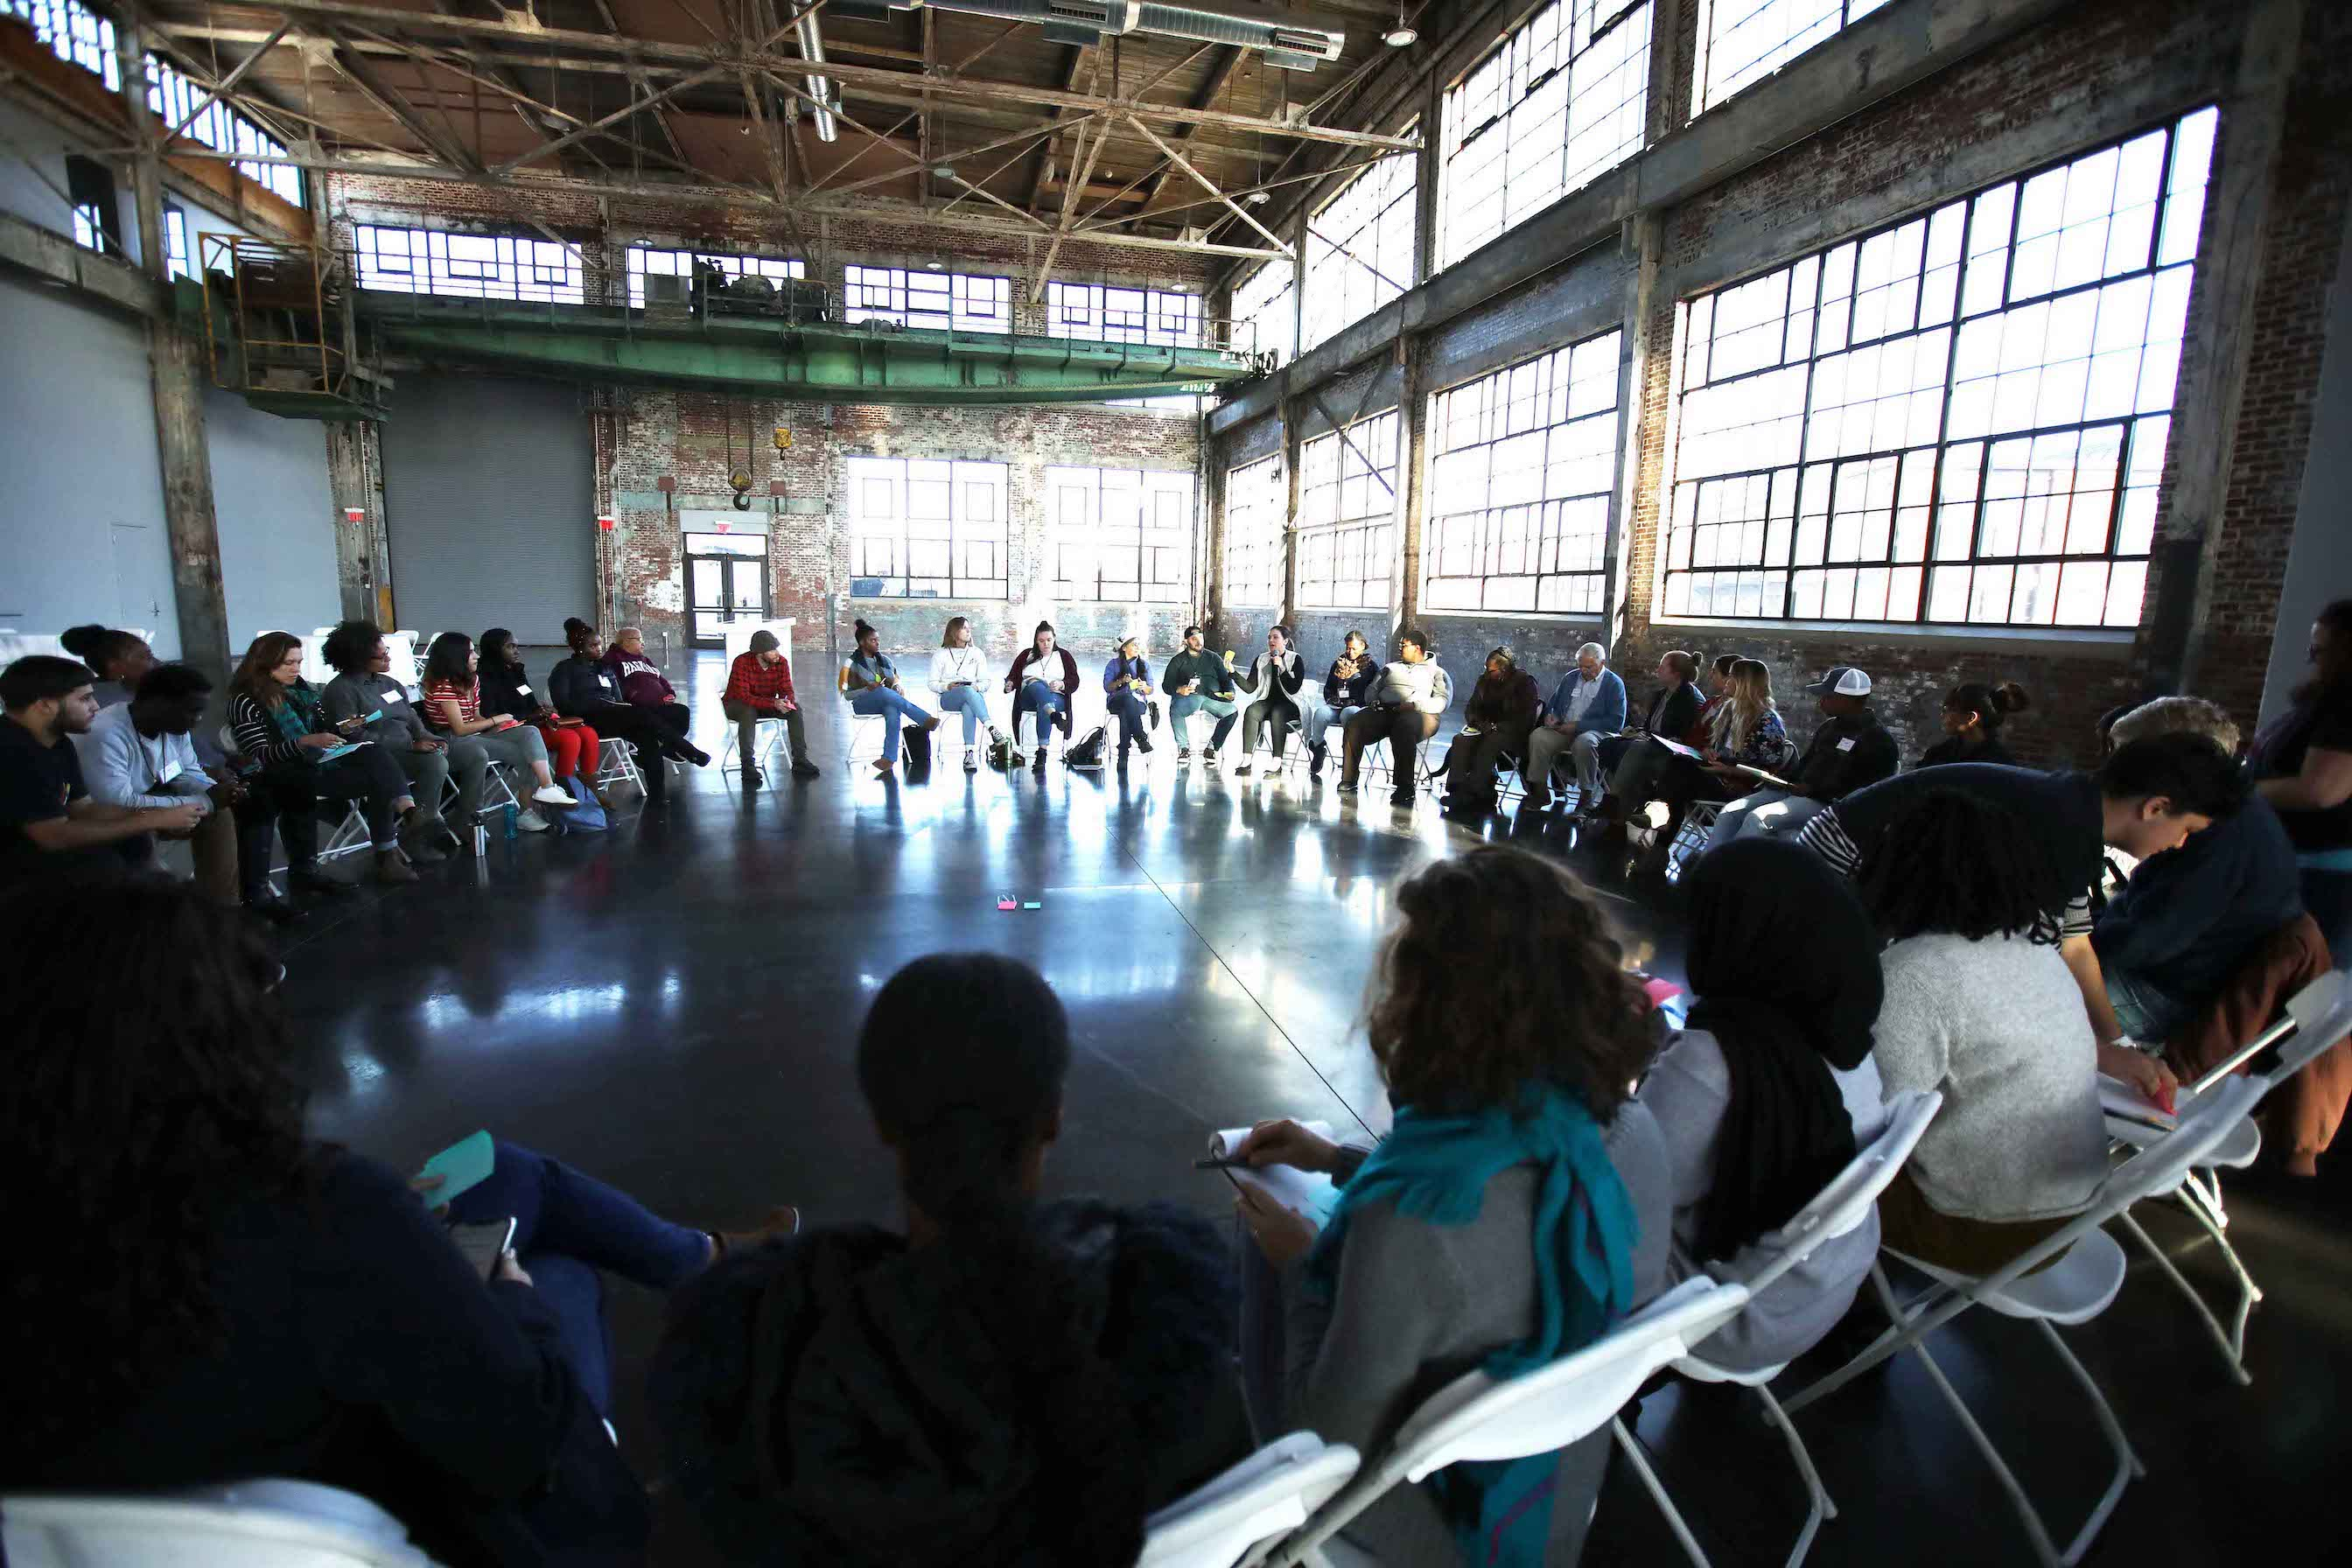 Participants circled up for the 'Authentic Community Partnerships: How to Build and Strengthen Community' workshop at Grassroots Fund's RootSkills Workshop in Providence, RI last month. Over 100 change makers representing all six New England states attended.